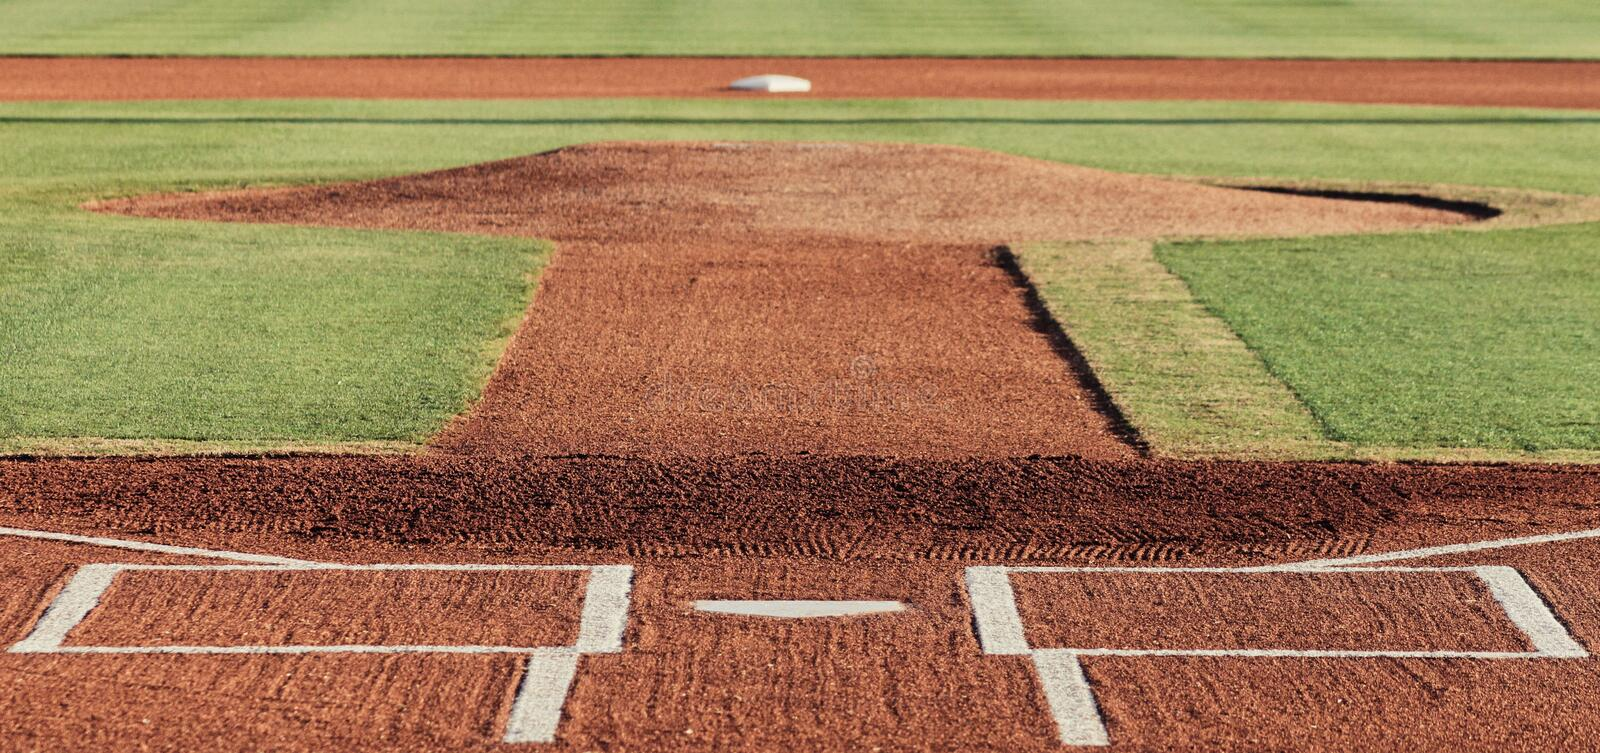 Baseball infield royalty free stock images